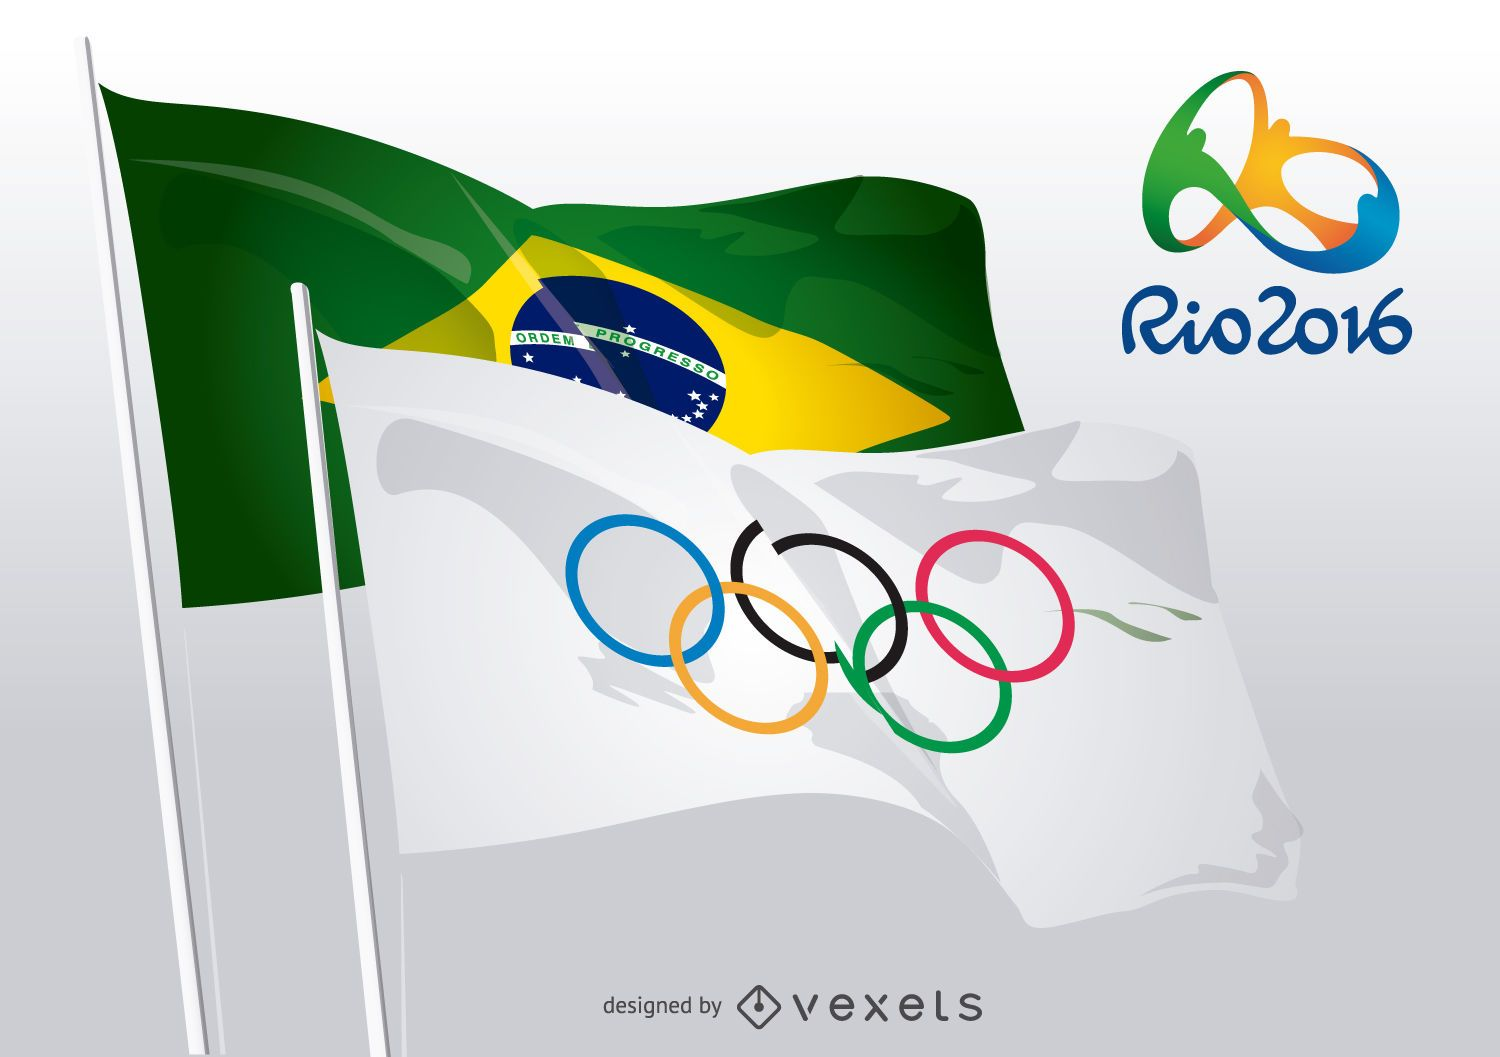 Rio 2016 - Olympic rings and Brazilian flags